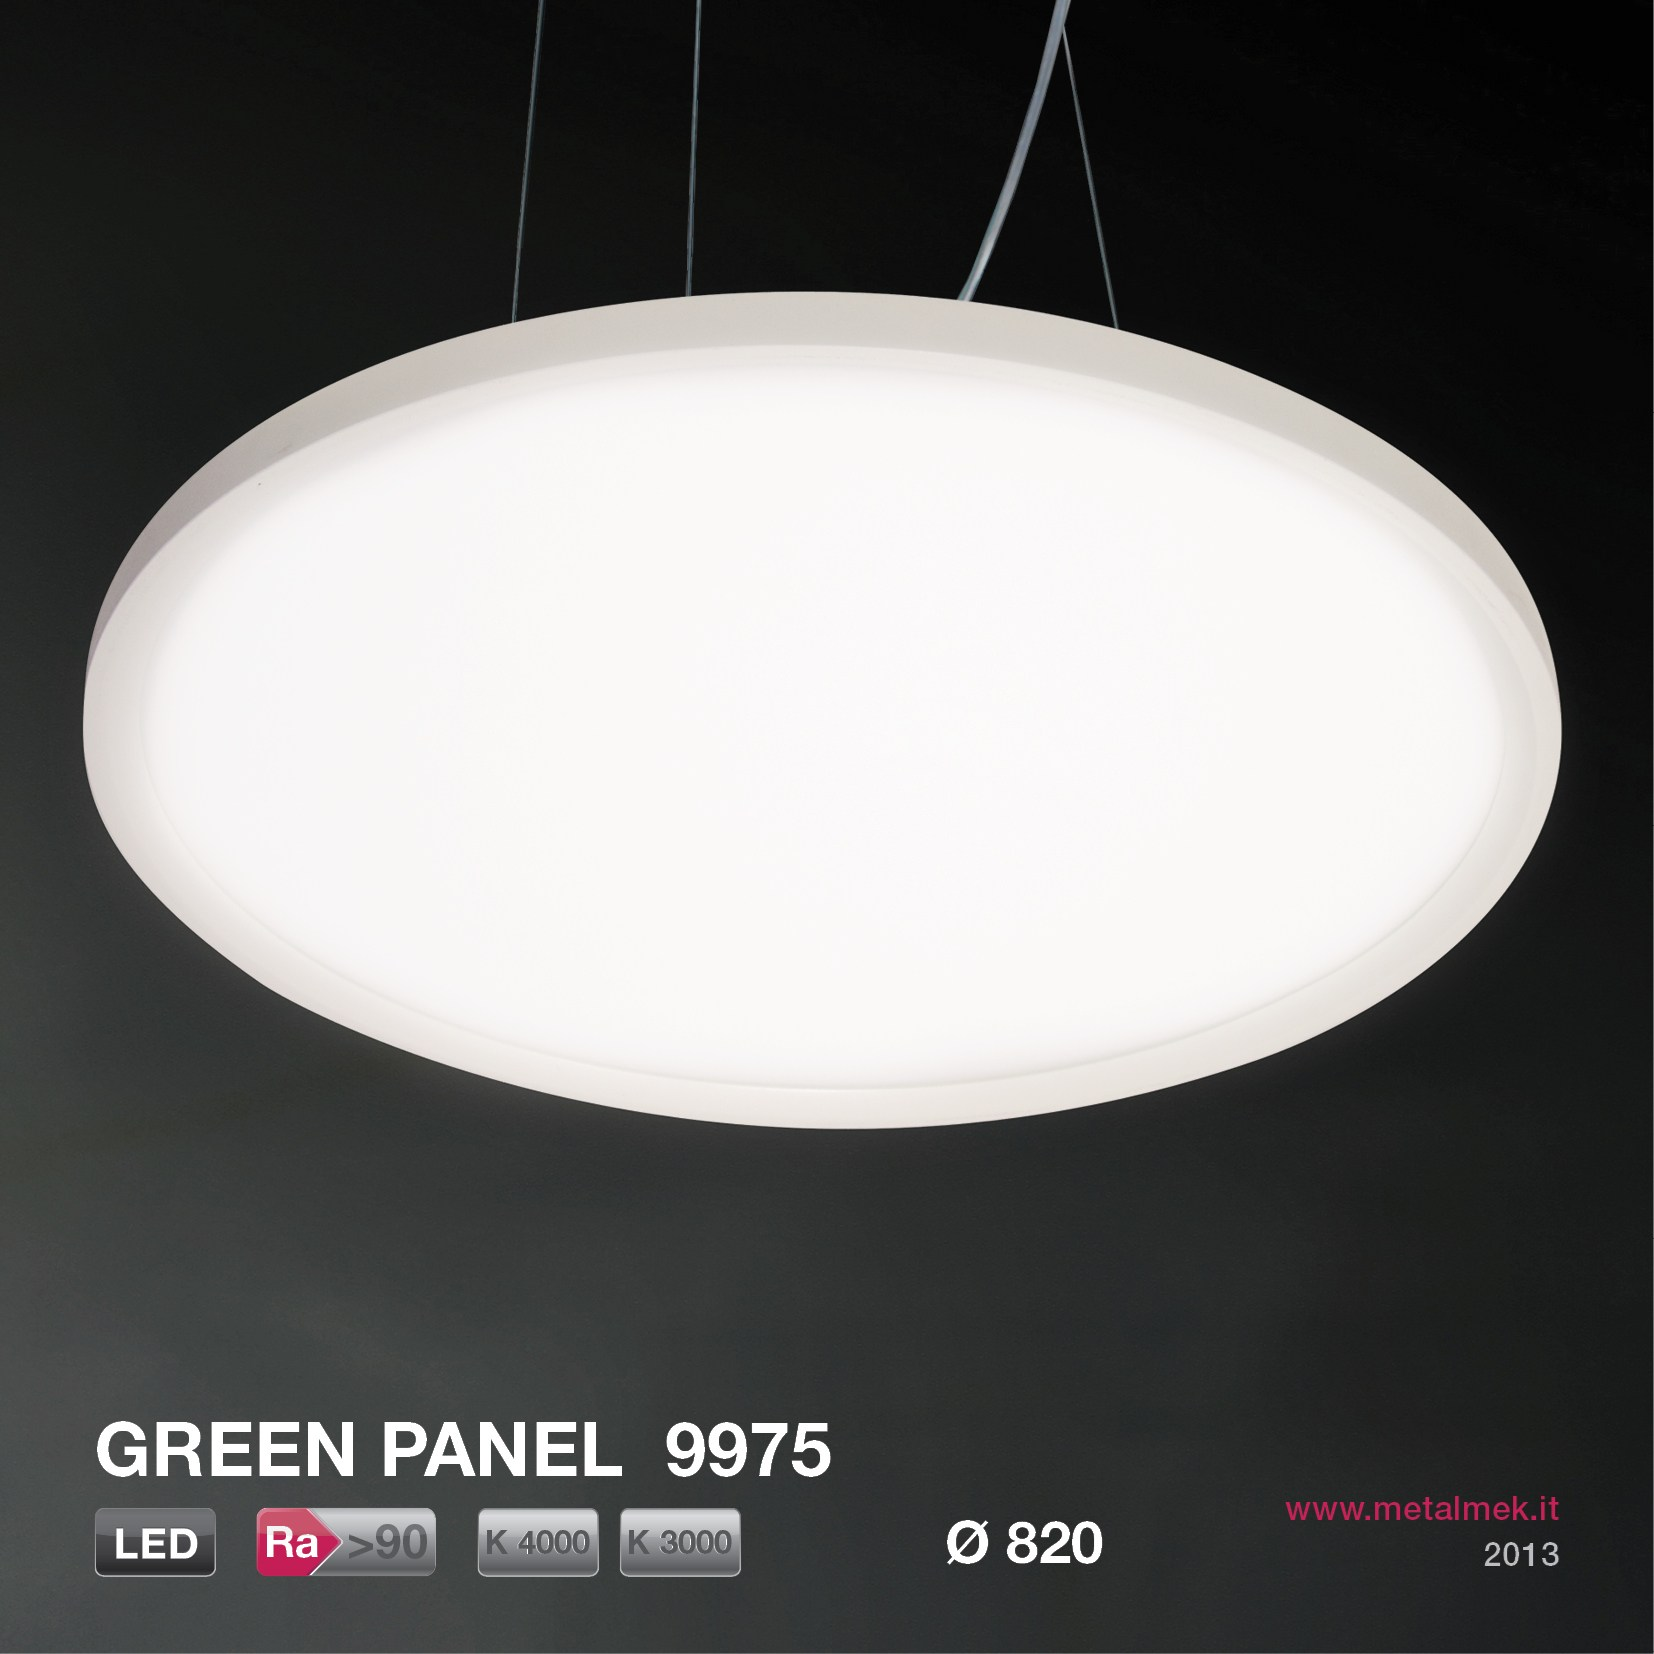 led pendelleuchte green panel round 9975 820 serie green panel by metalmek illuminazione. Black Bedroom Furniture Sets. Home Design Ideas